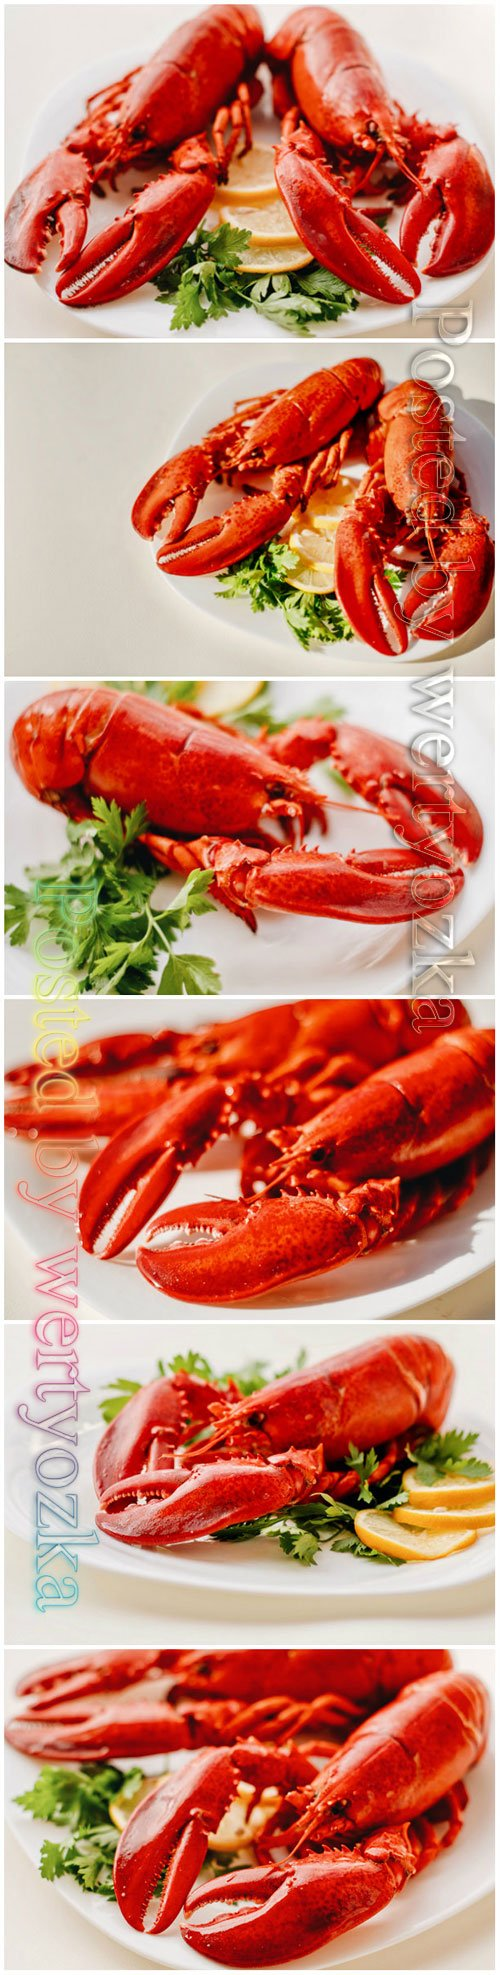 Seafood lobster beautiful stock photo